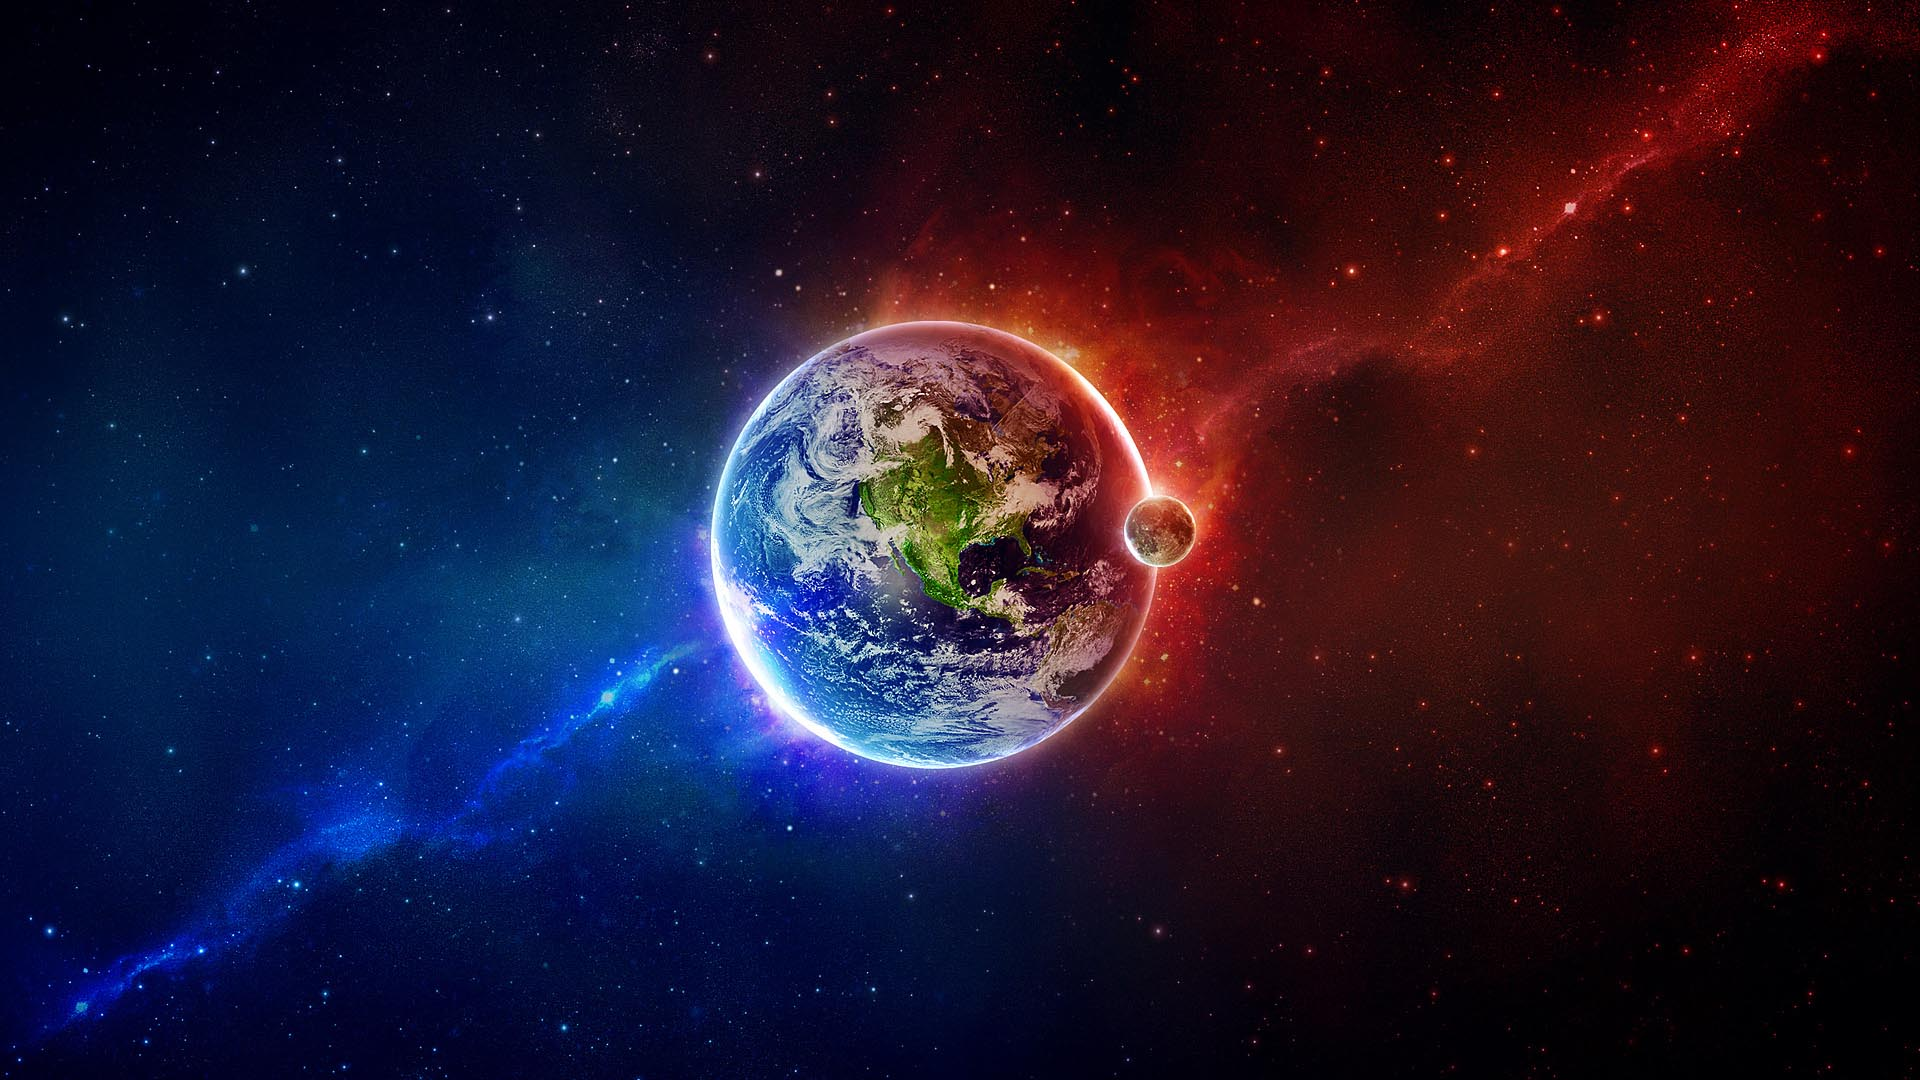 Outer Space Earth Moon Red Blue HD Wallpaper FullHDWpp   Full HD 1920x1080